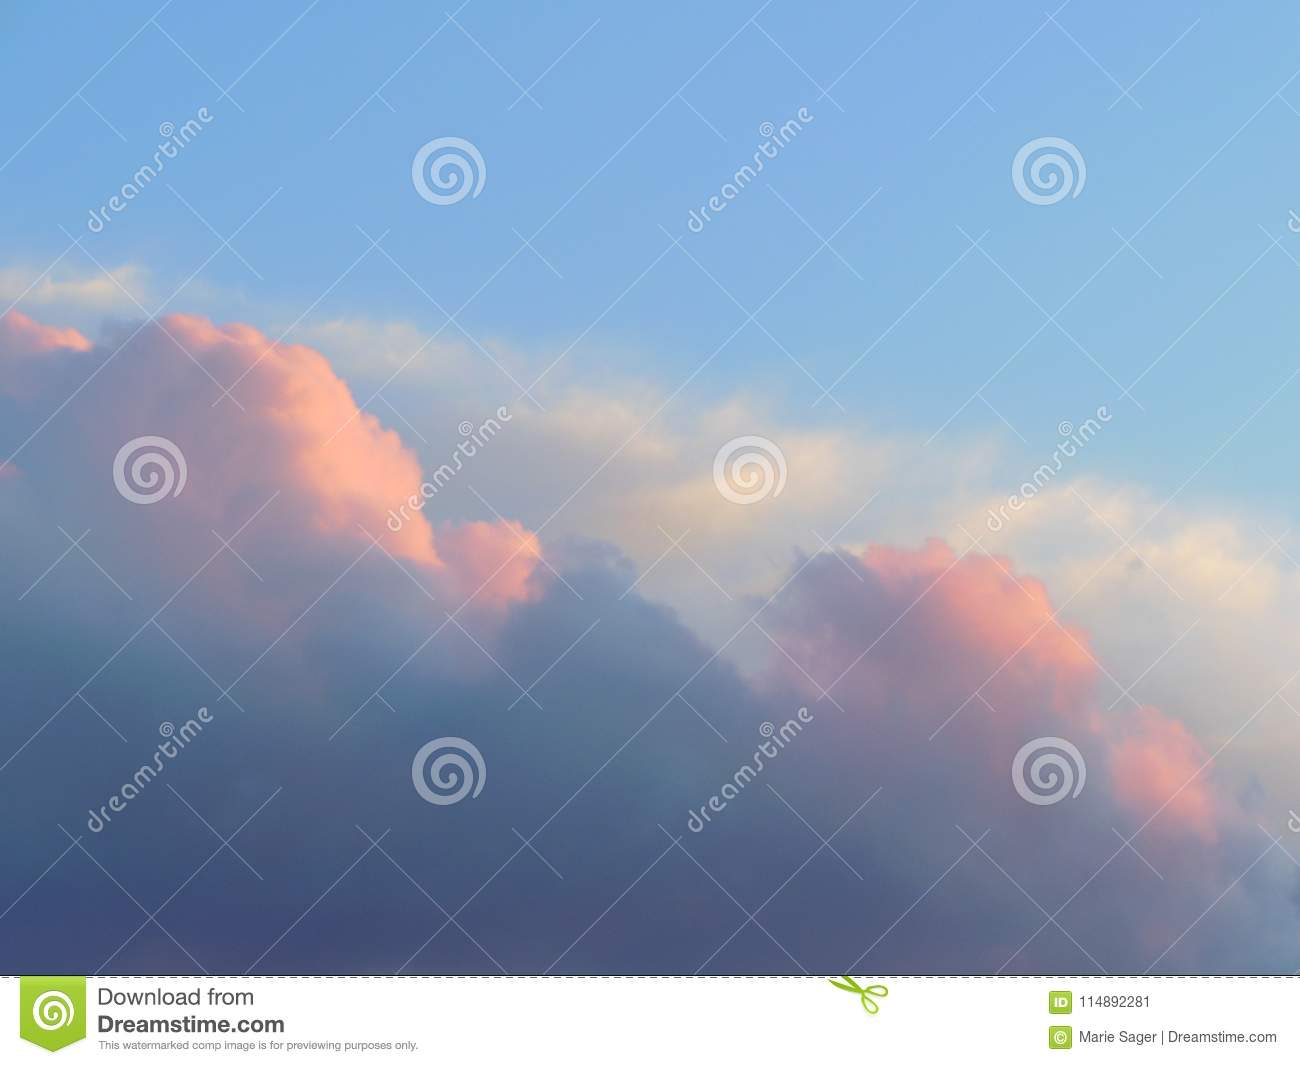 Soft Pink and White Clouds